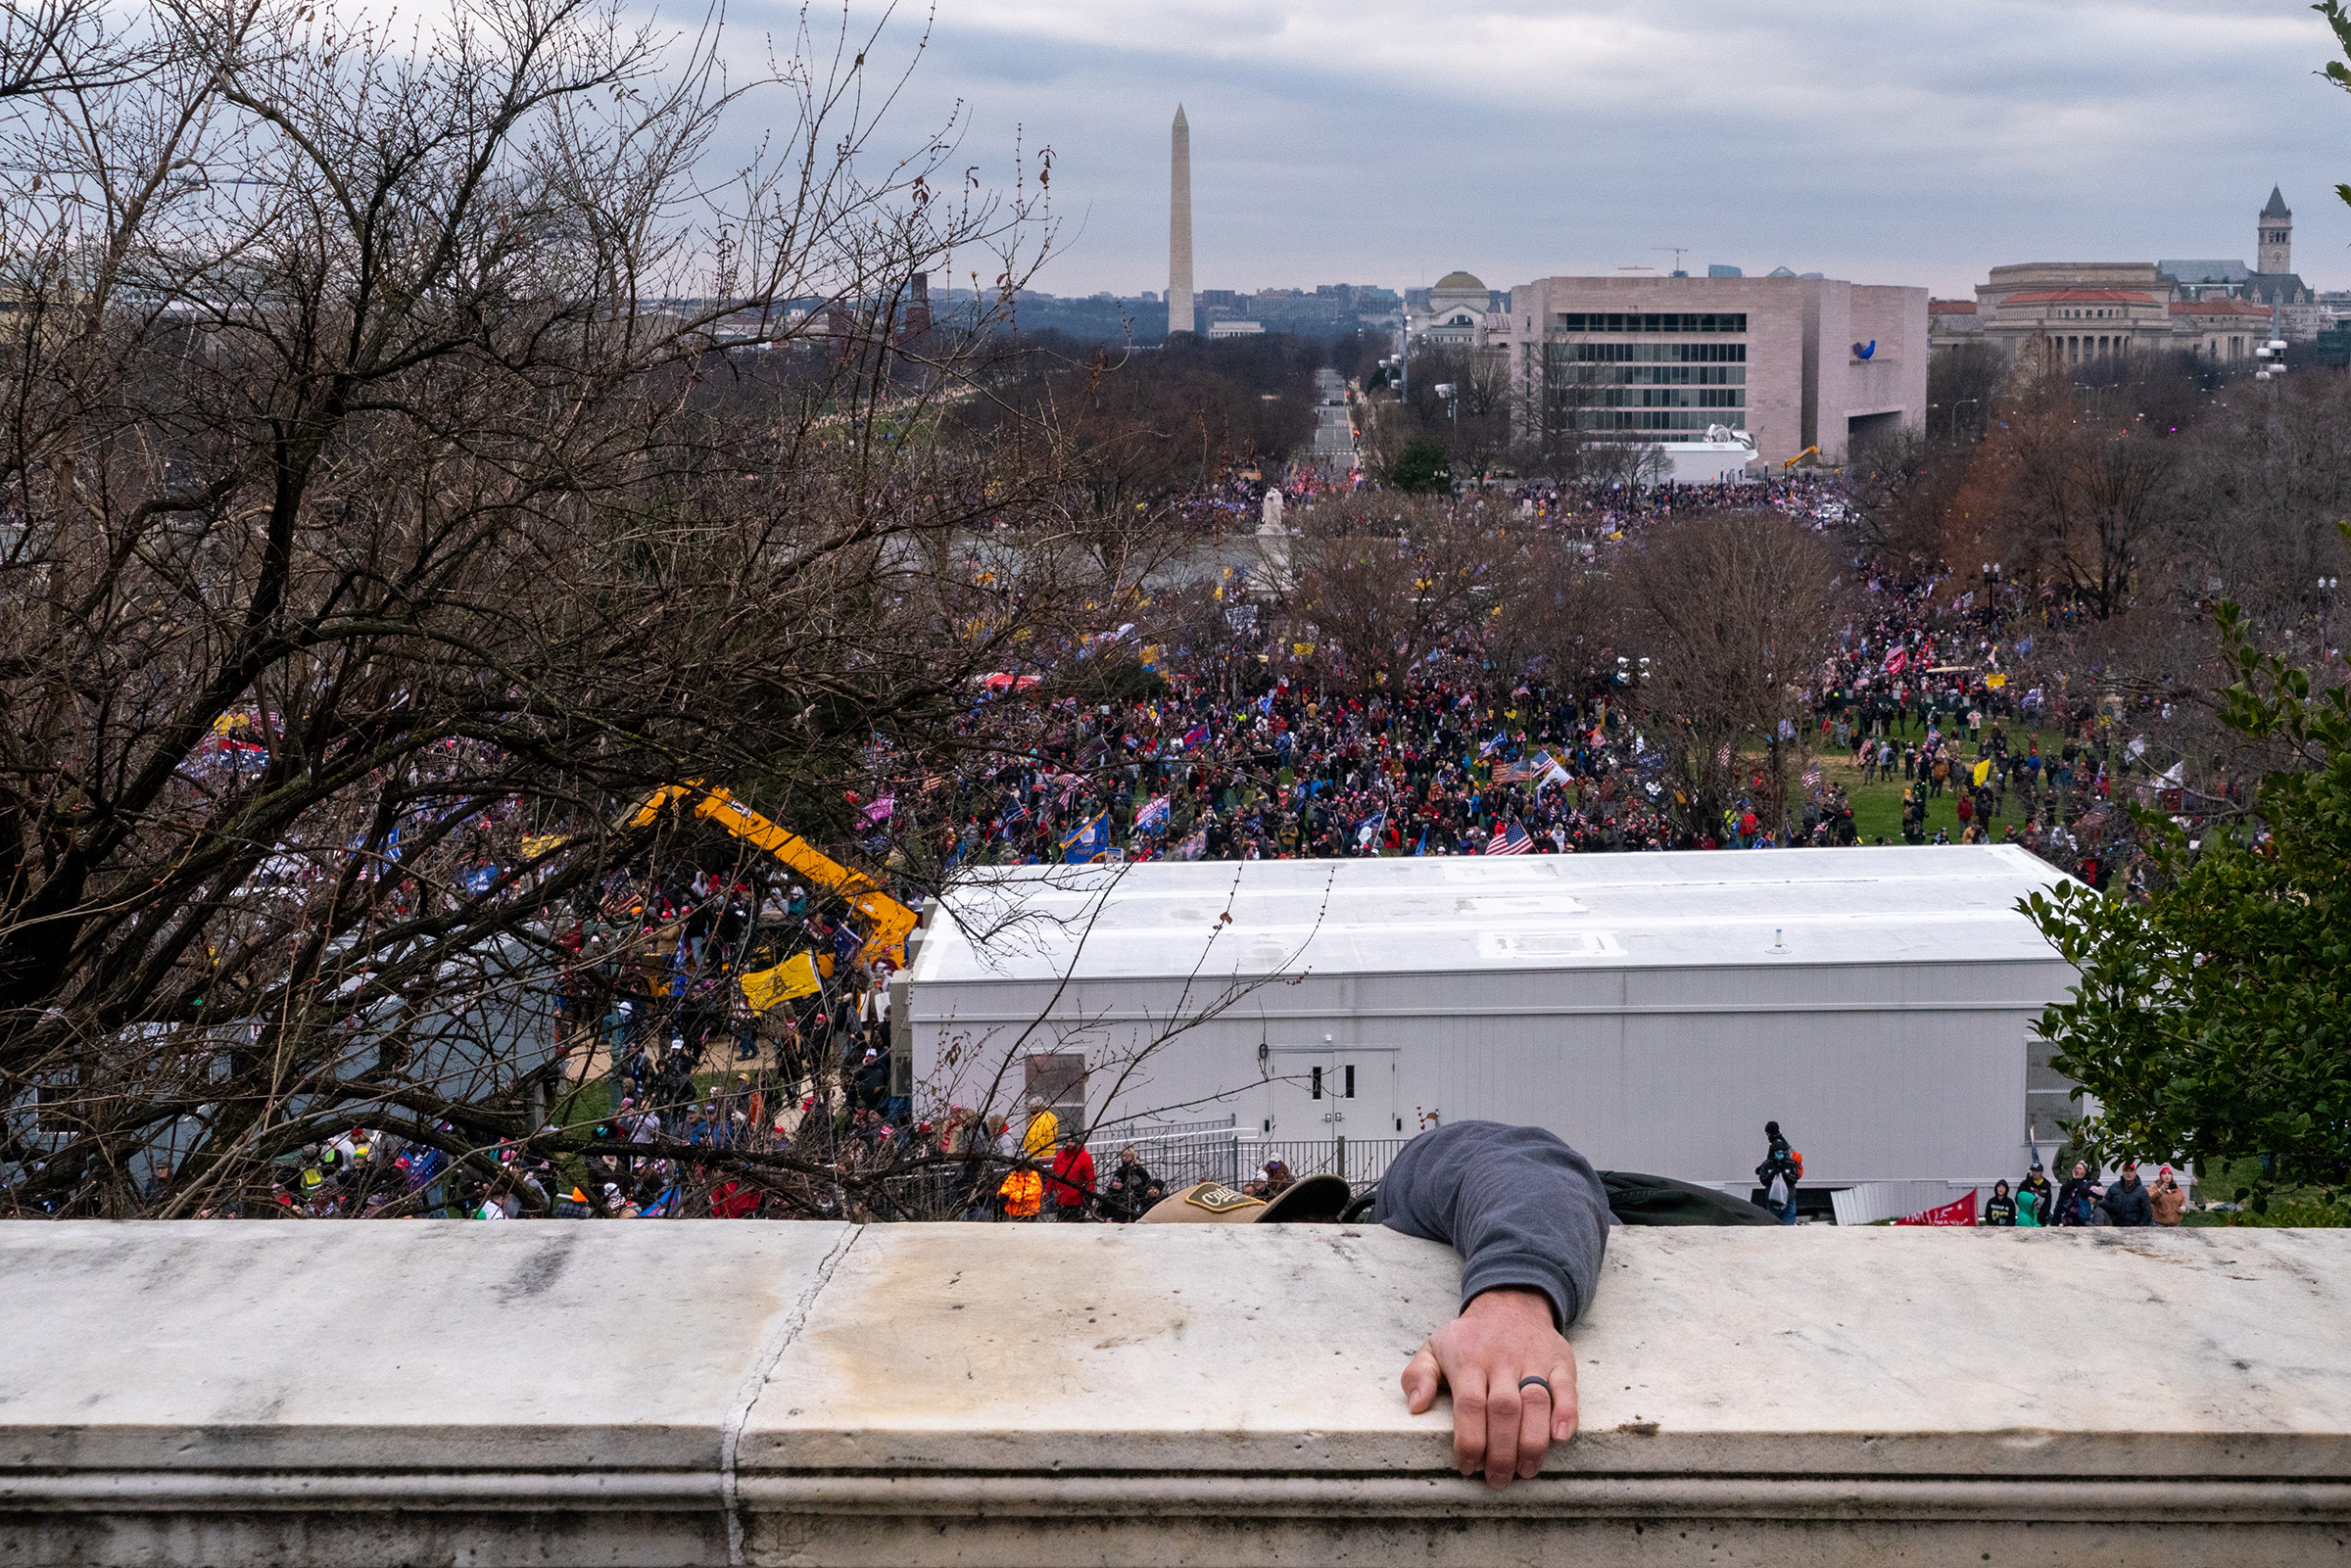 A rioter climbs the walls of the U.S. Capitol after President Trump encouraged a rally audience to pressure Republican lawmakers on Jan. 6.